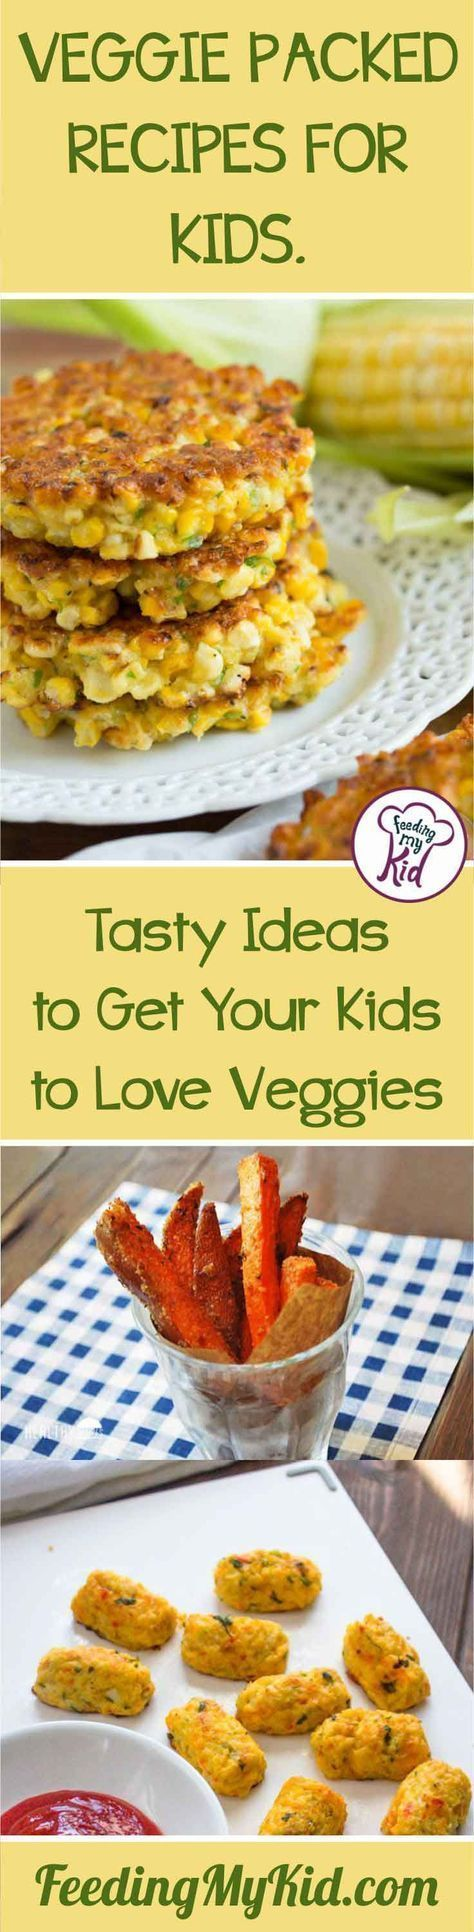 Recipes for Kids That are Healthy and Taste Great, Too! -